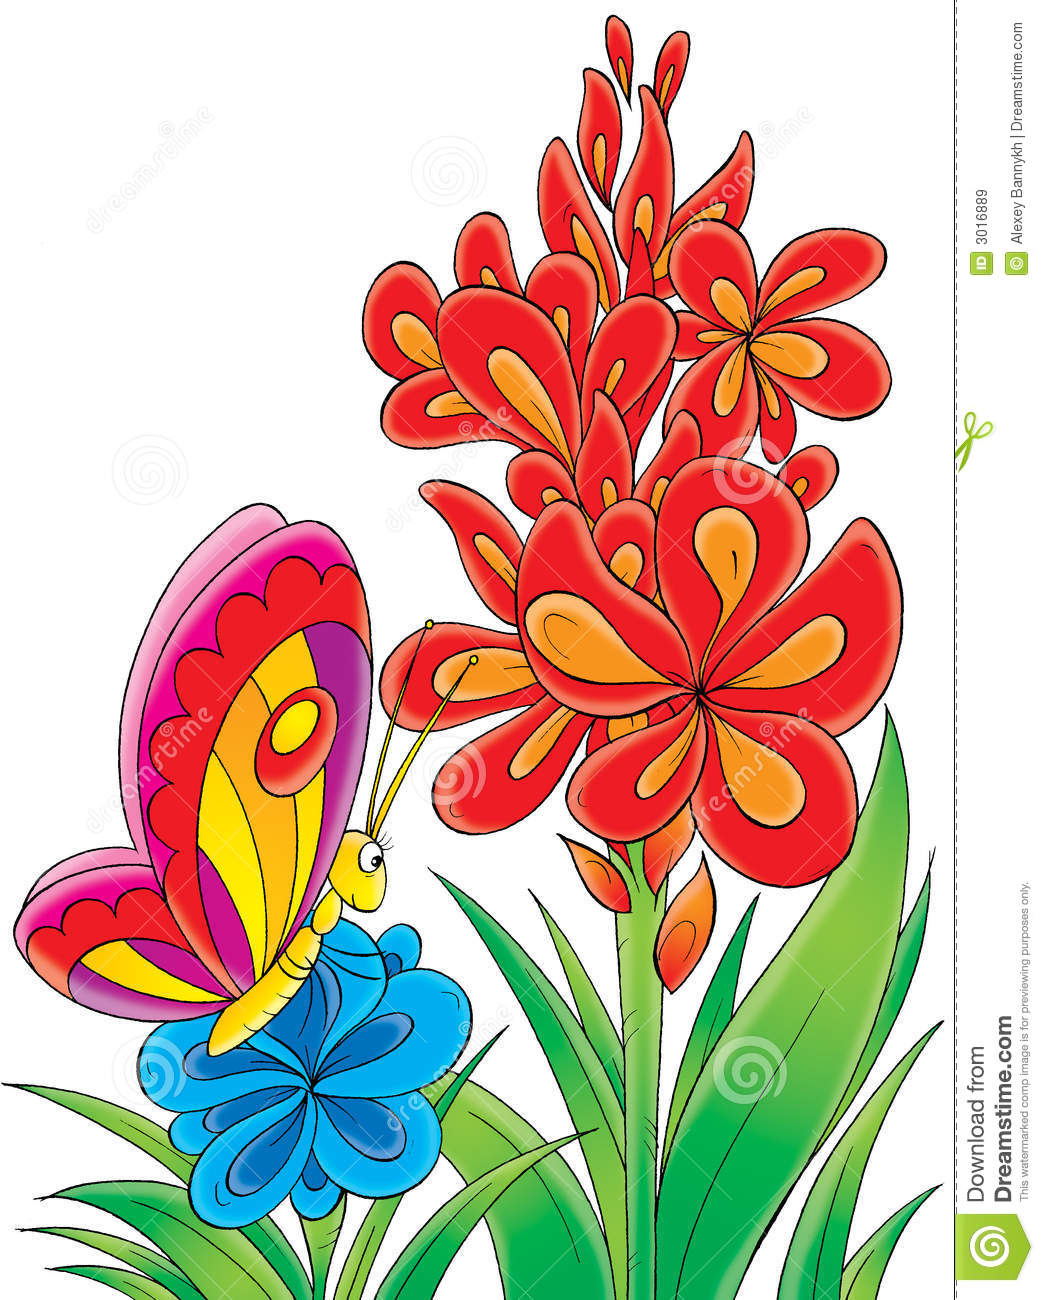 Butterfly and flowers clipart.